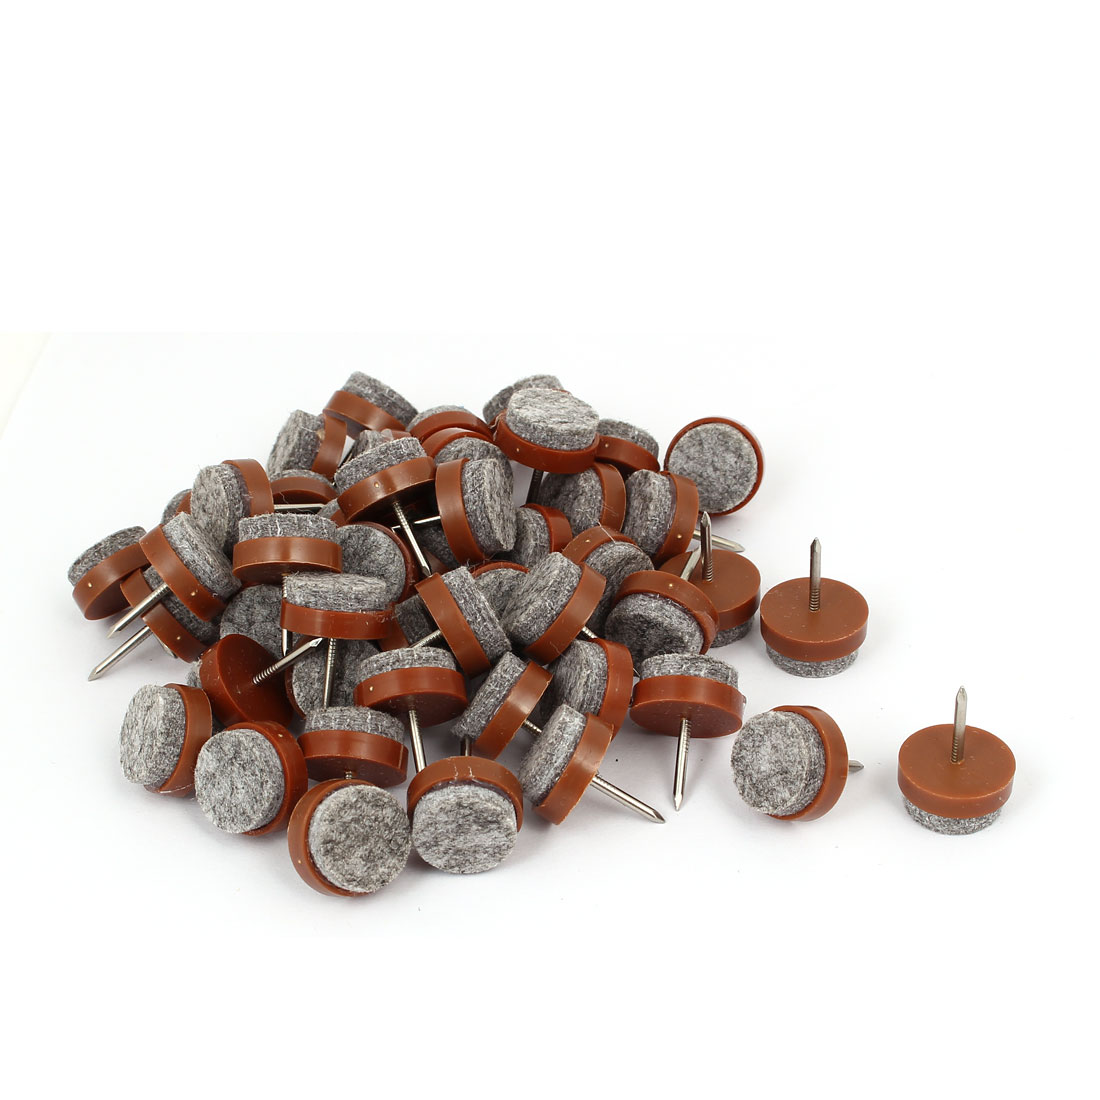 Table Legs Round Shape Furniture Protector Nail Feet Pad Brown 20mm x 26mm 50pcs